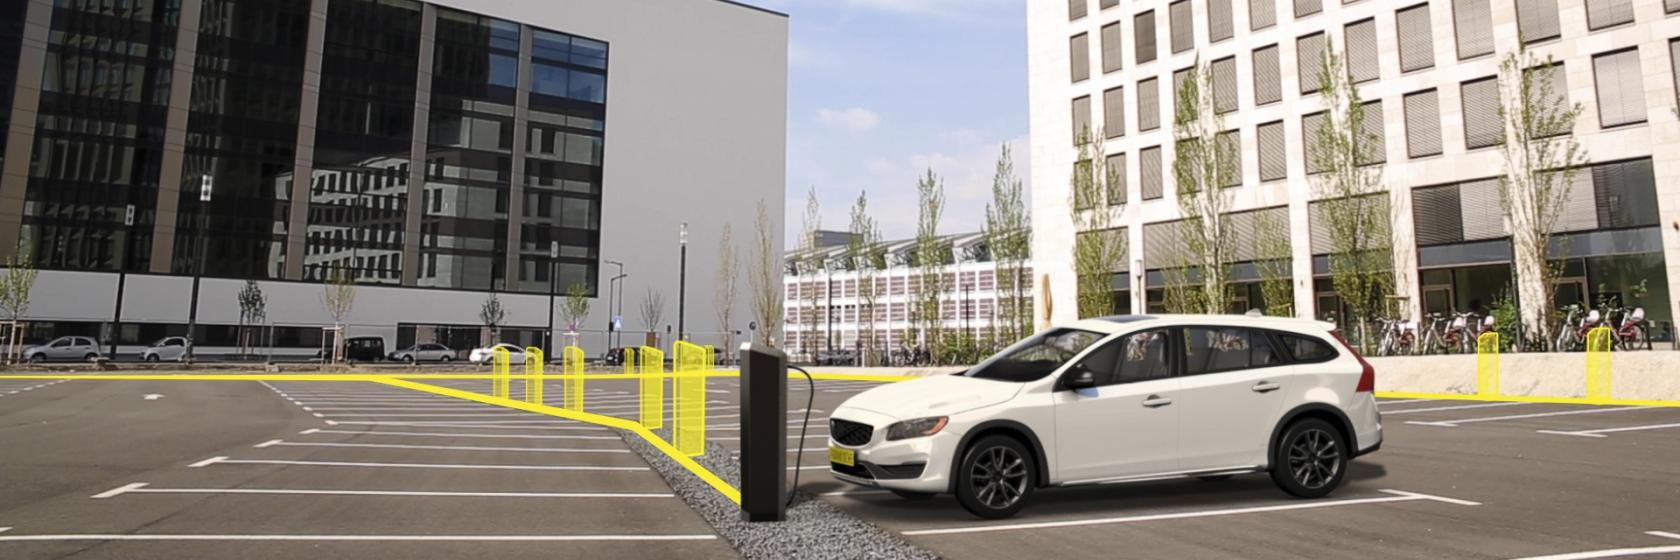 Ready for electromobility?